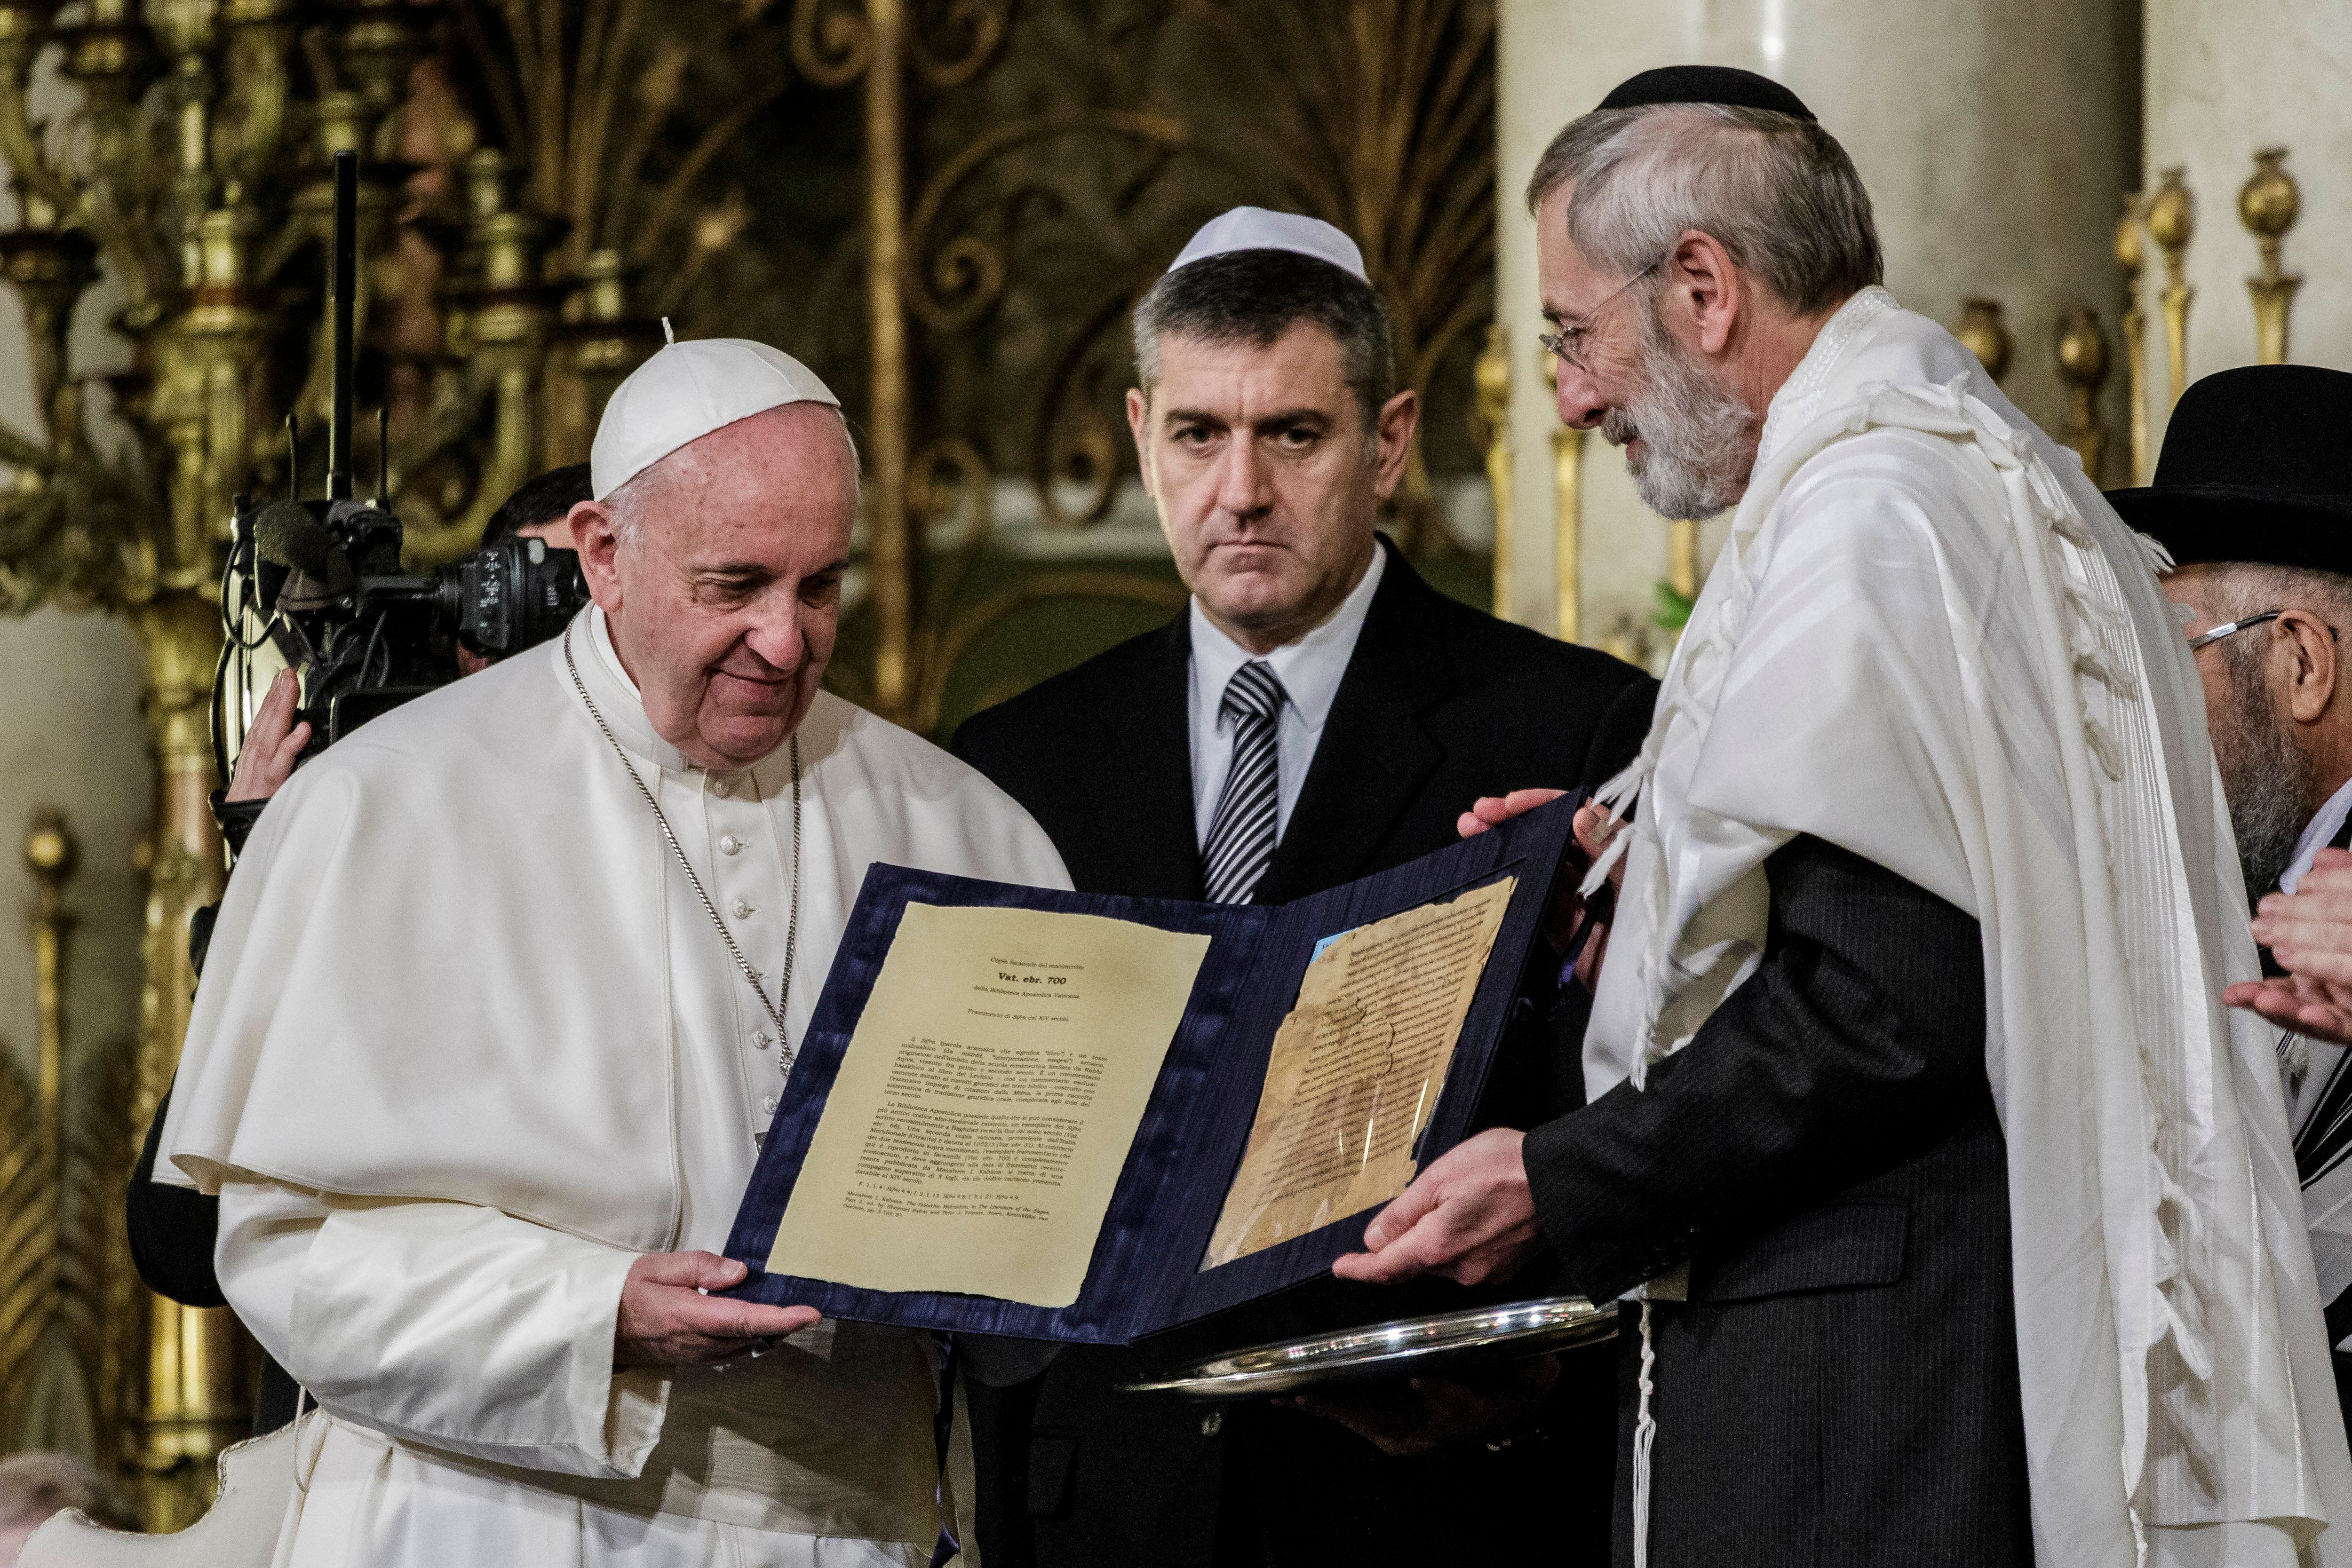 Pope Francis shows a gift donated from Rabbi Riccardo Di Segni (R) during his visit to the Great Synagogue of Rome, Italy.&nb